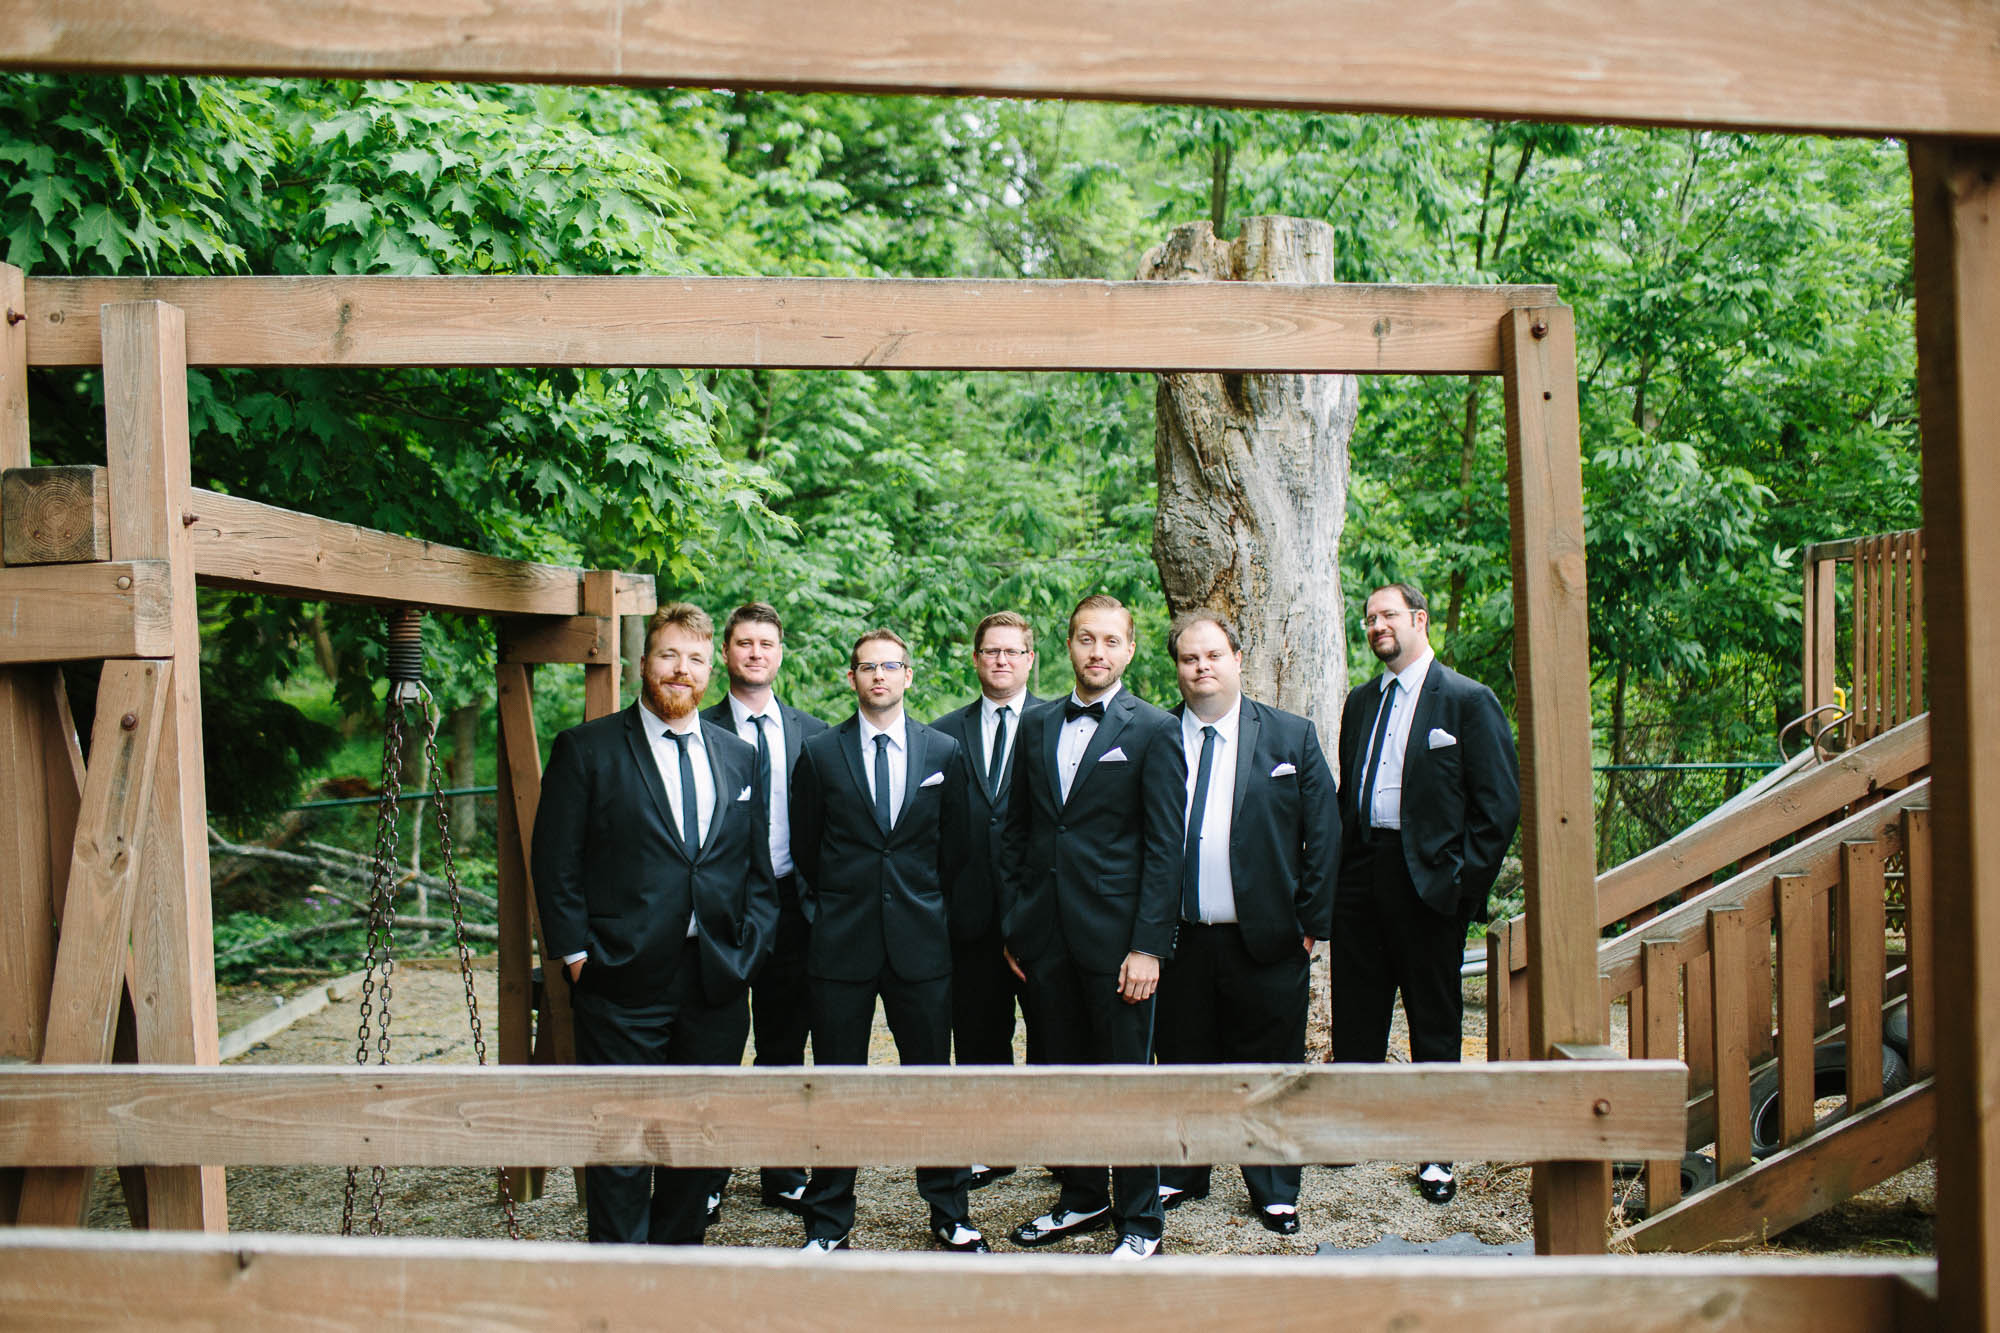 www-marycostaphotography-com-buffalo-ny-wedding-032